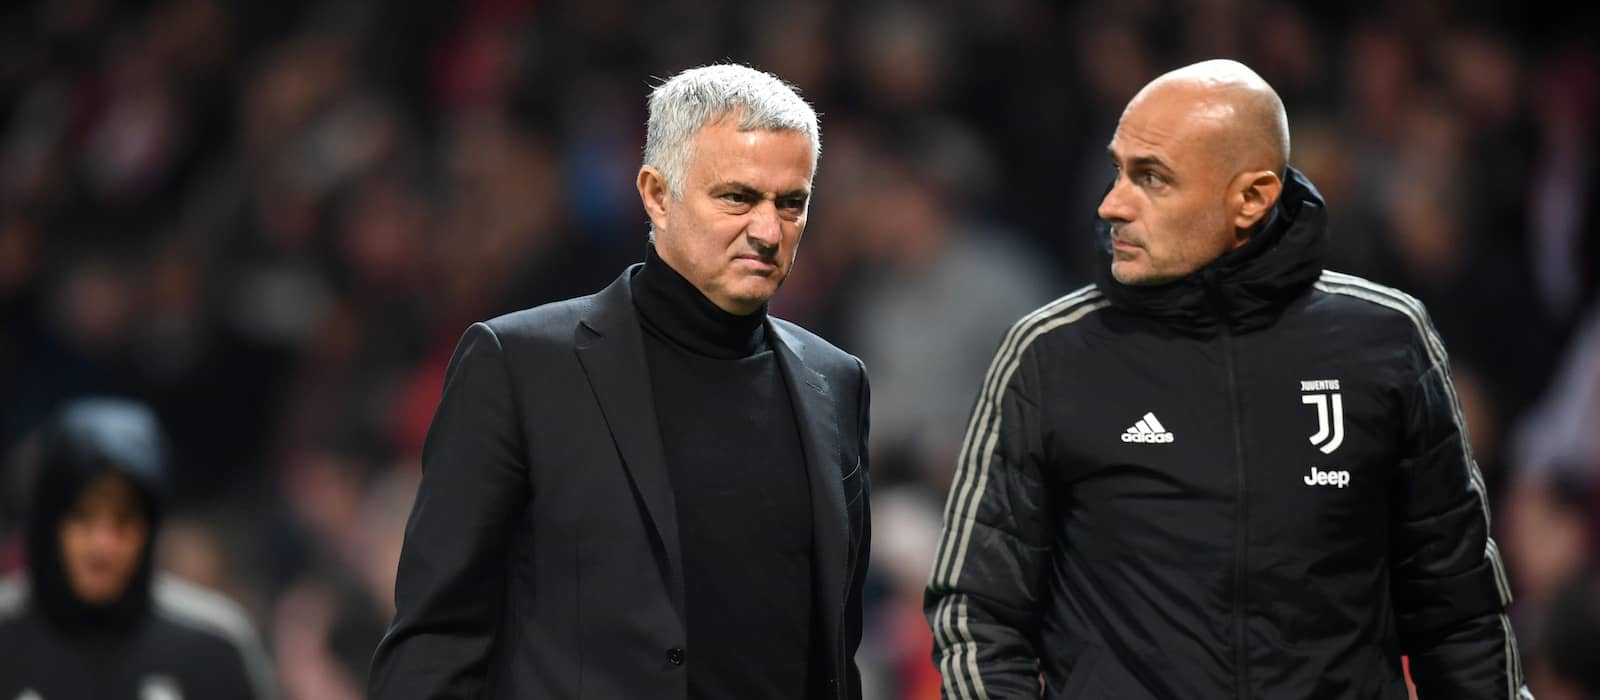 Jose Mourinho not allowed to speak about Manchester United in public – report